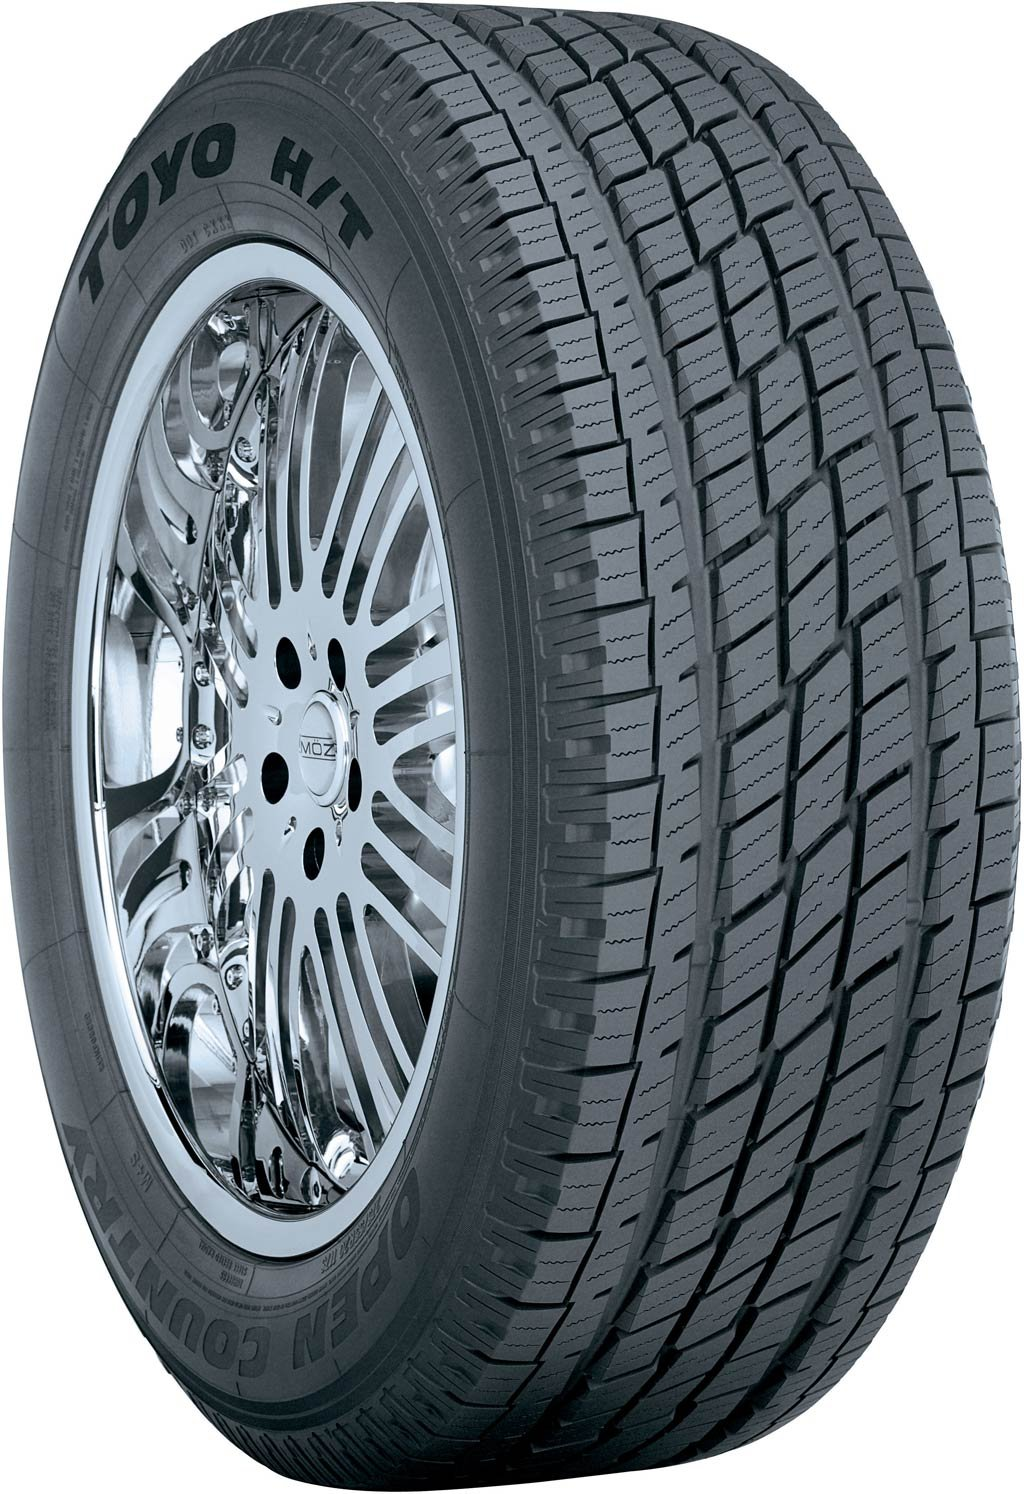 Amazon.com: Toyo Open Country H/T All-Season Radial Tire - 225/65R17 102H: Automotive